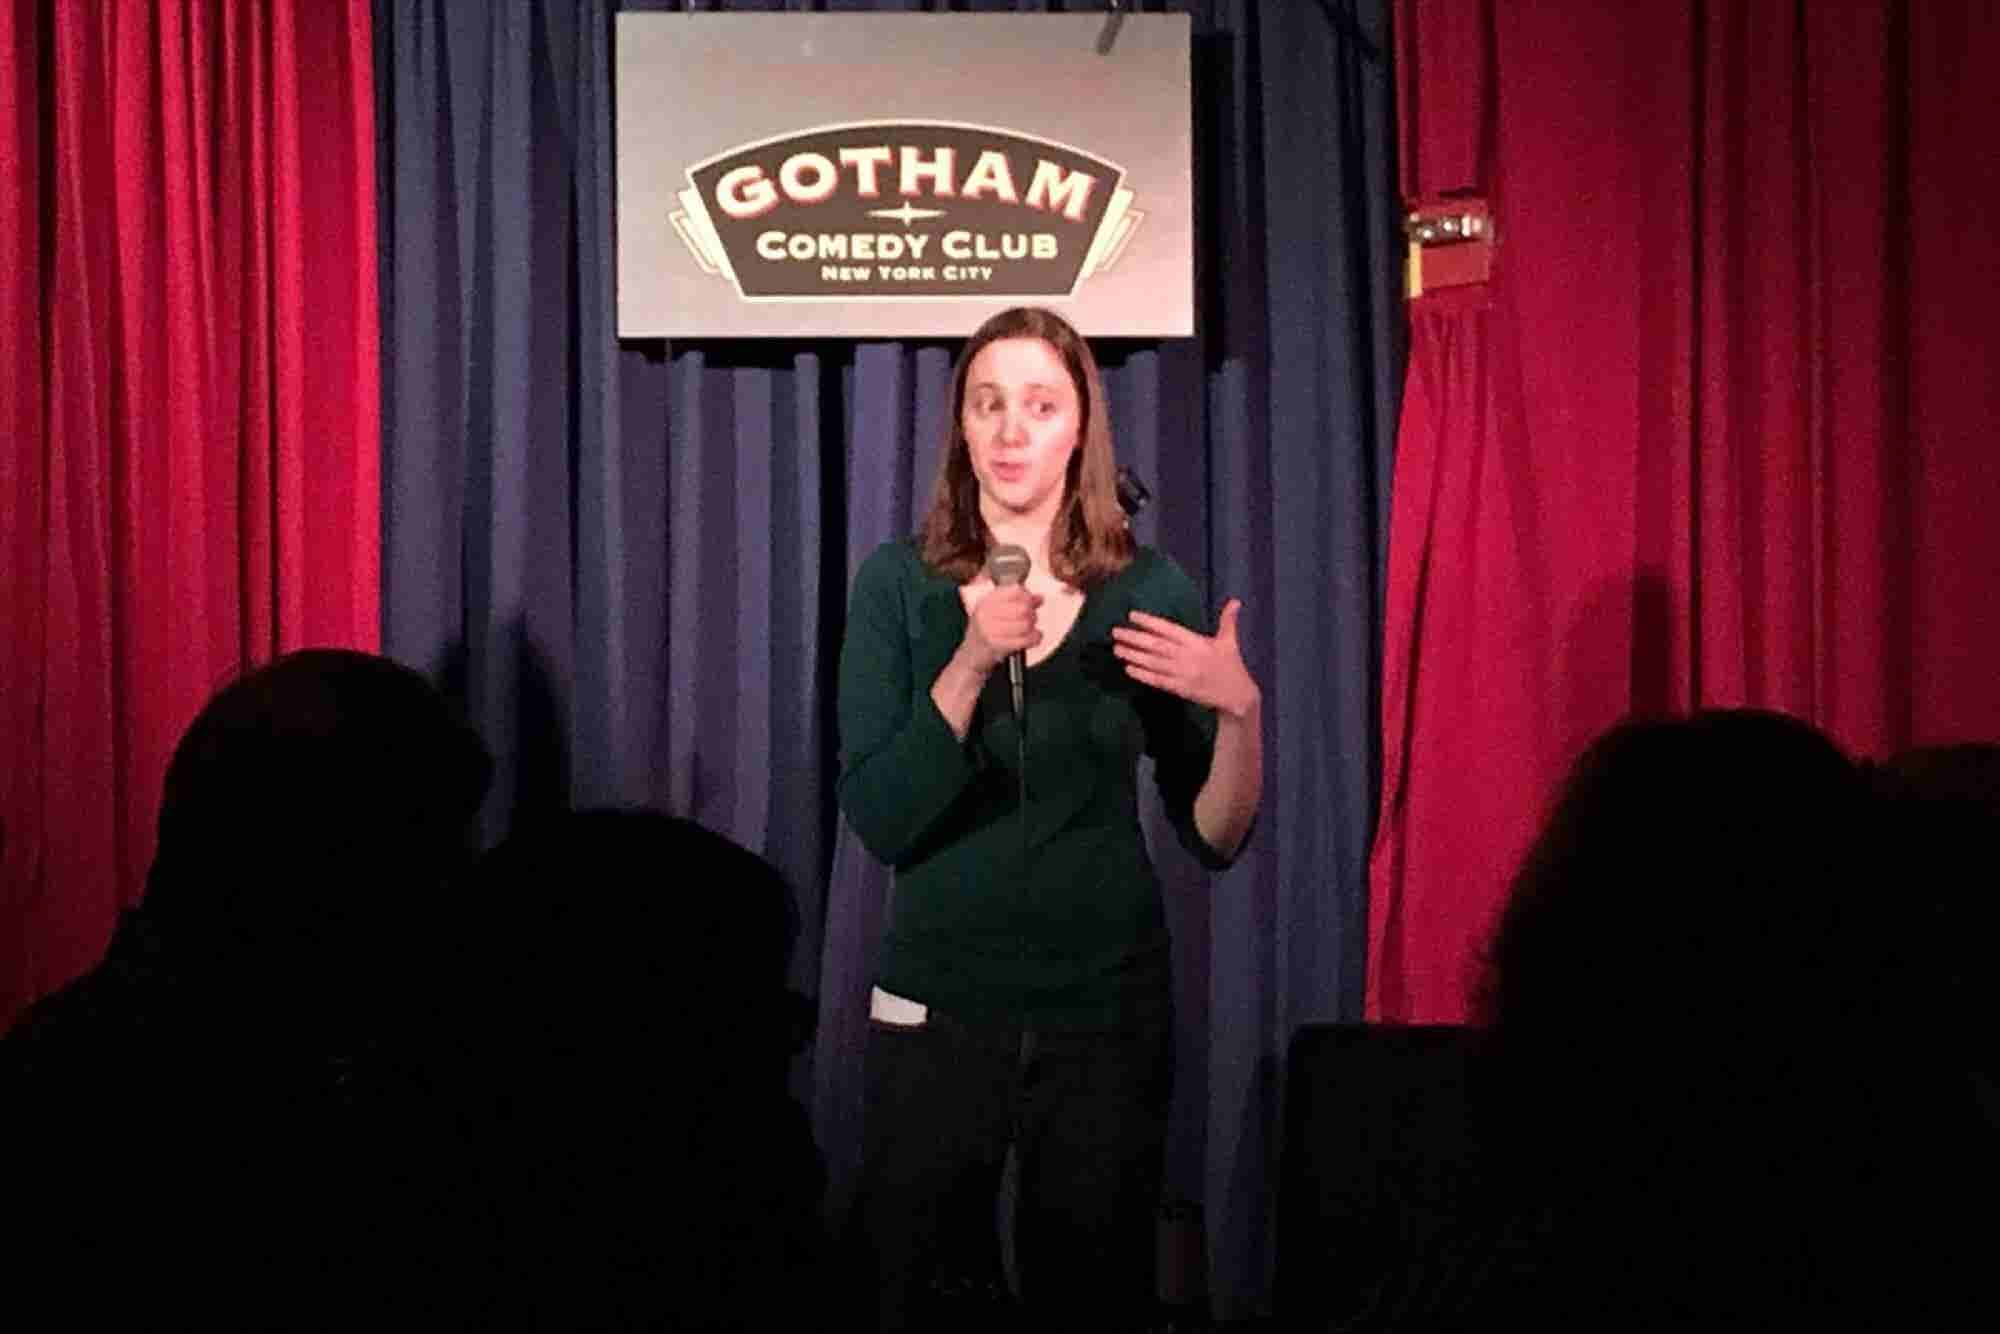 I Recently Made My Stand Up Comedy Debut. It Was Terrifying, But So Rewarding.